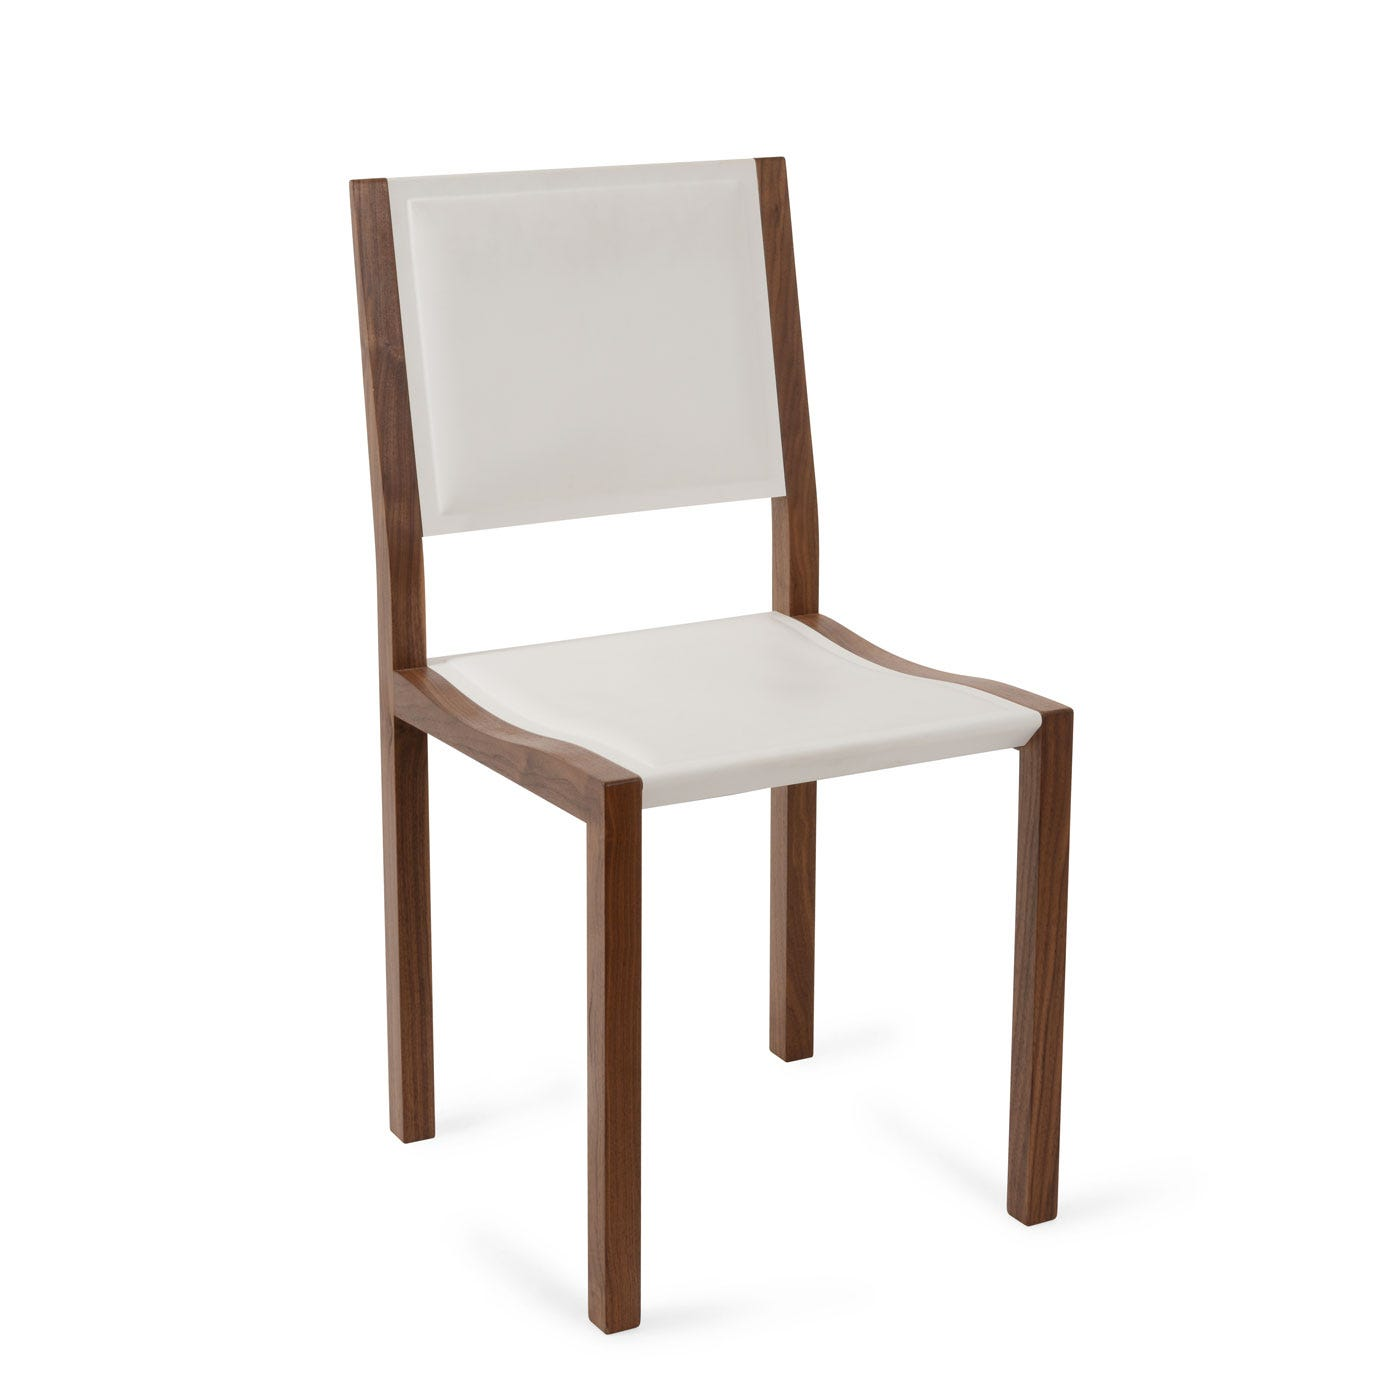 Lucido Chair Leather Effect Upholstery Dining Room Sale Furniture Sale Winter Sale